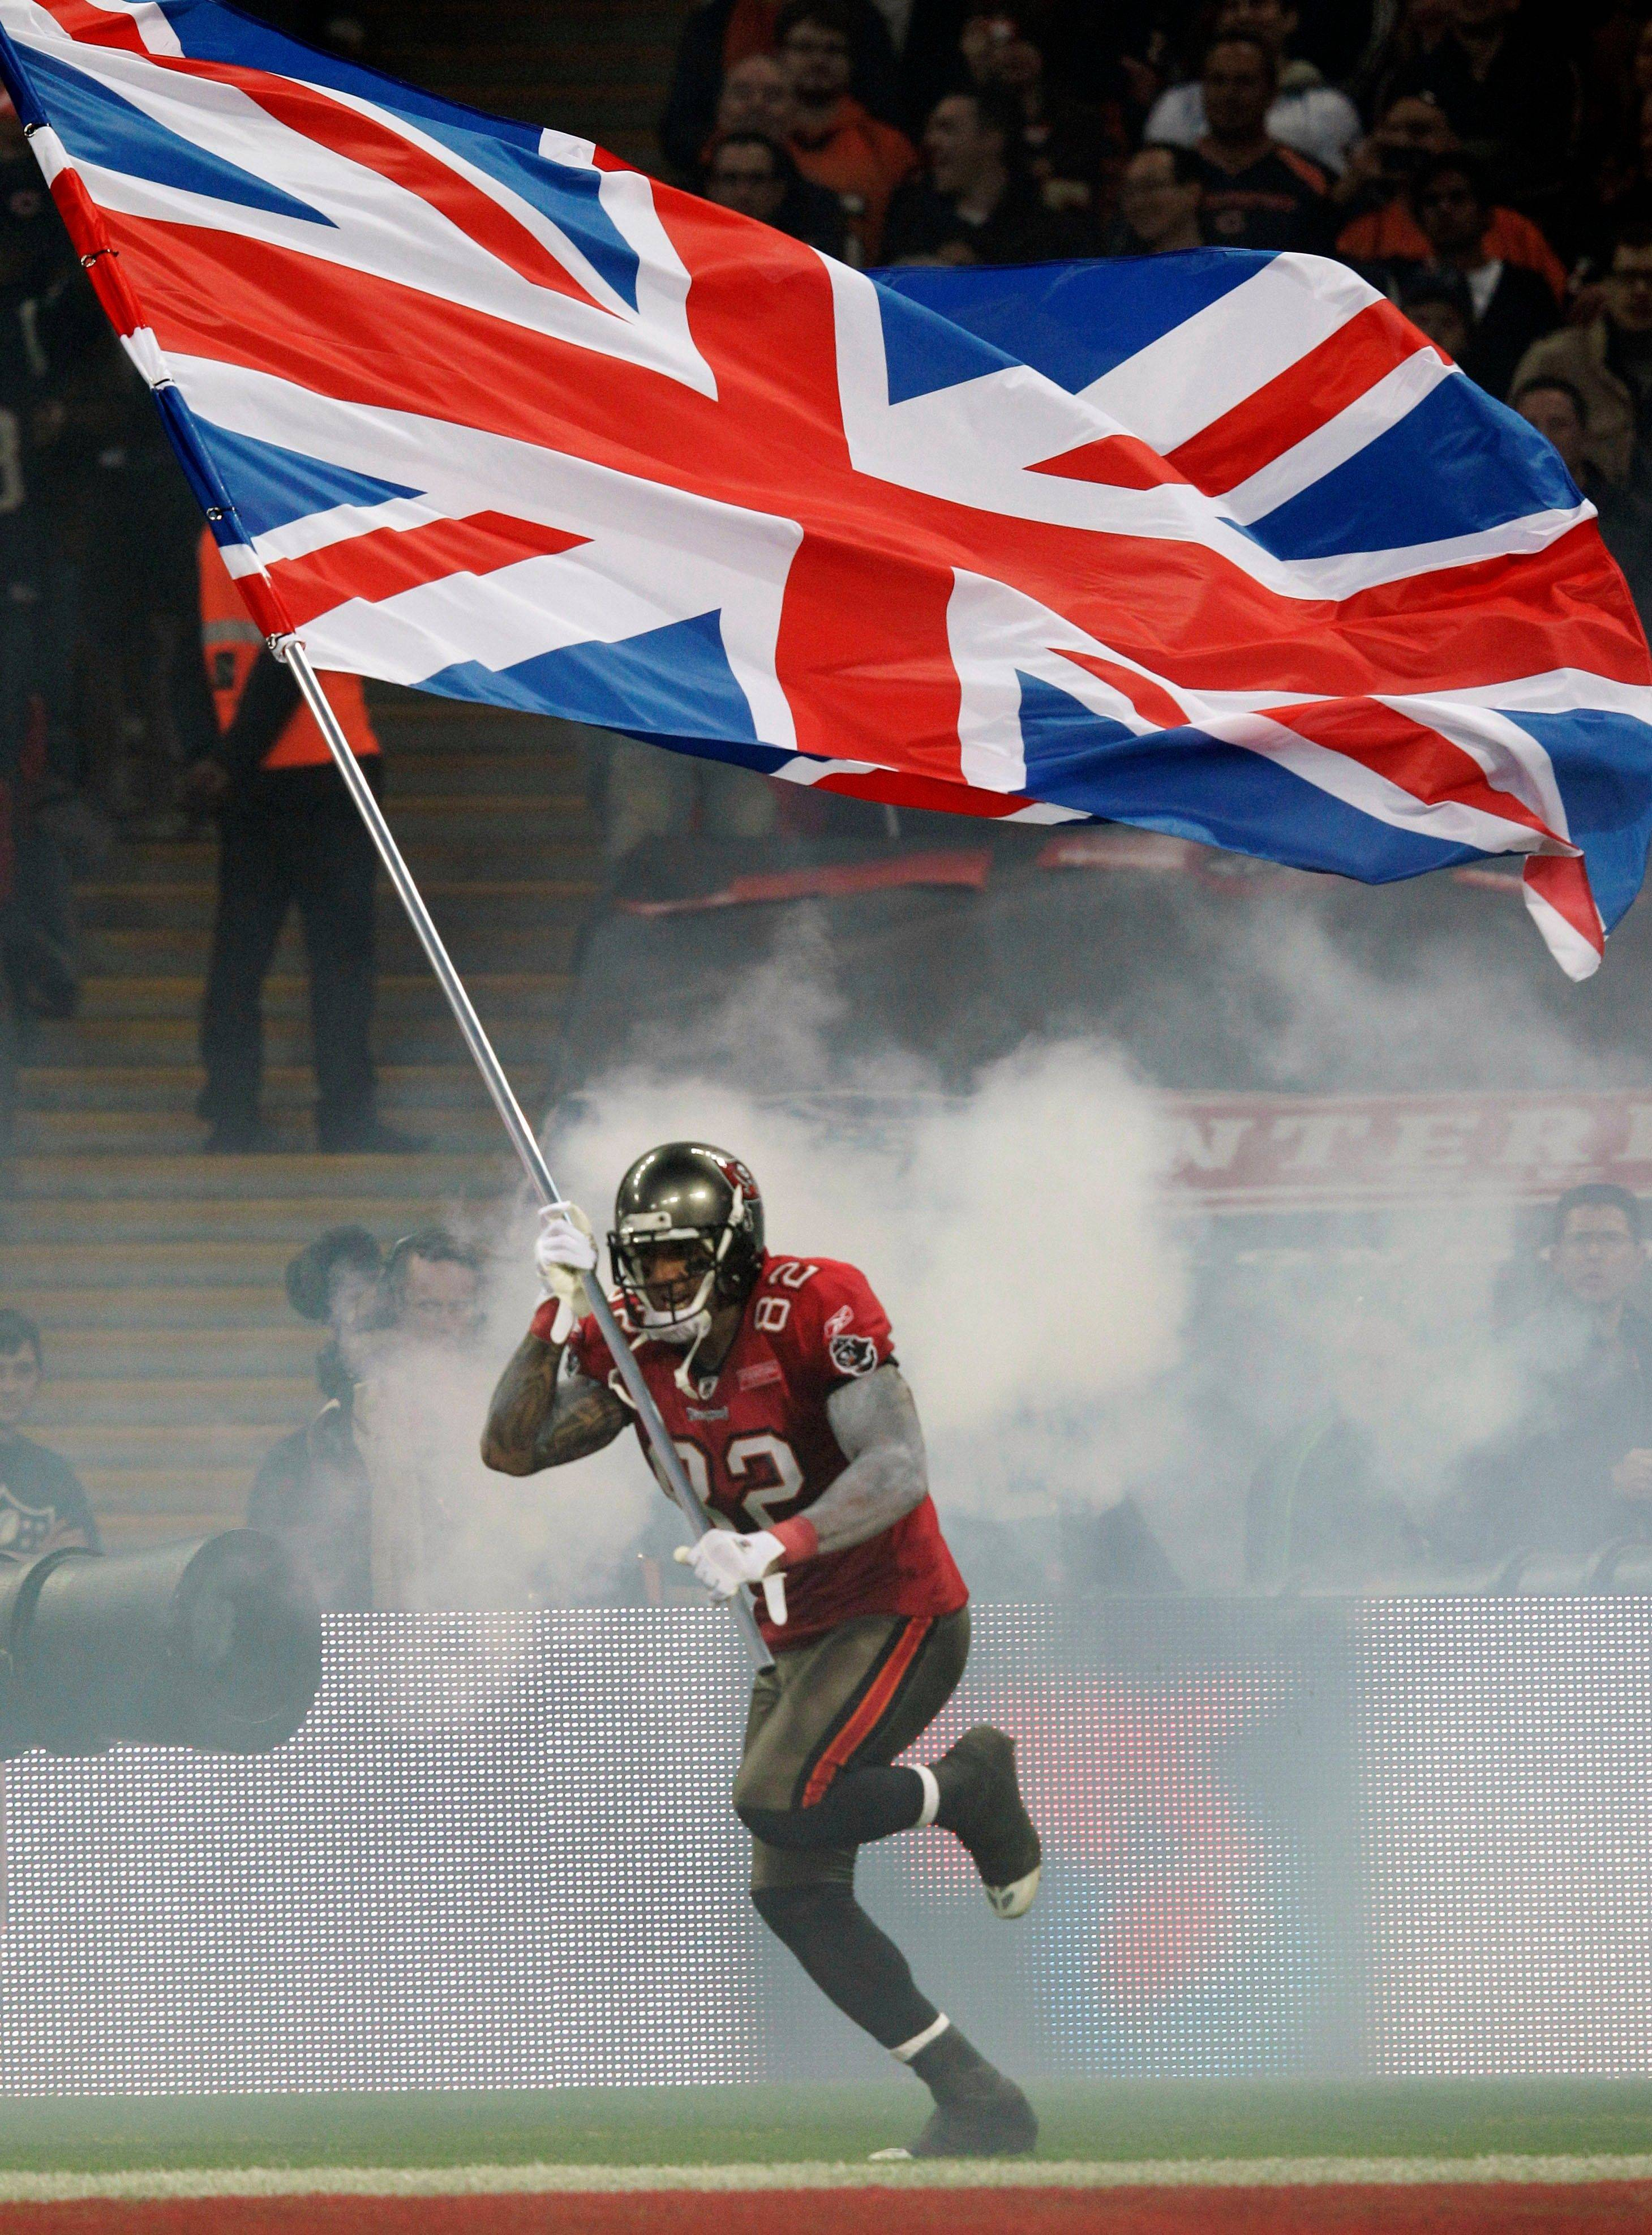 Tampa Bay Buccaneers tight end Kellen Winslow carries a British flag onto the field before an NFL football game against the Chicago Bears at Wembley Stadium in London.